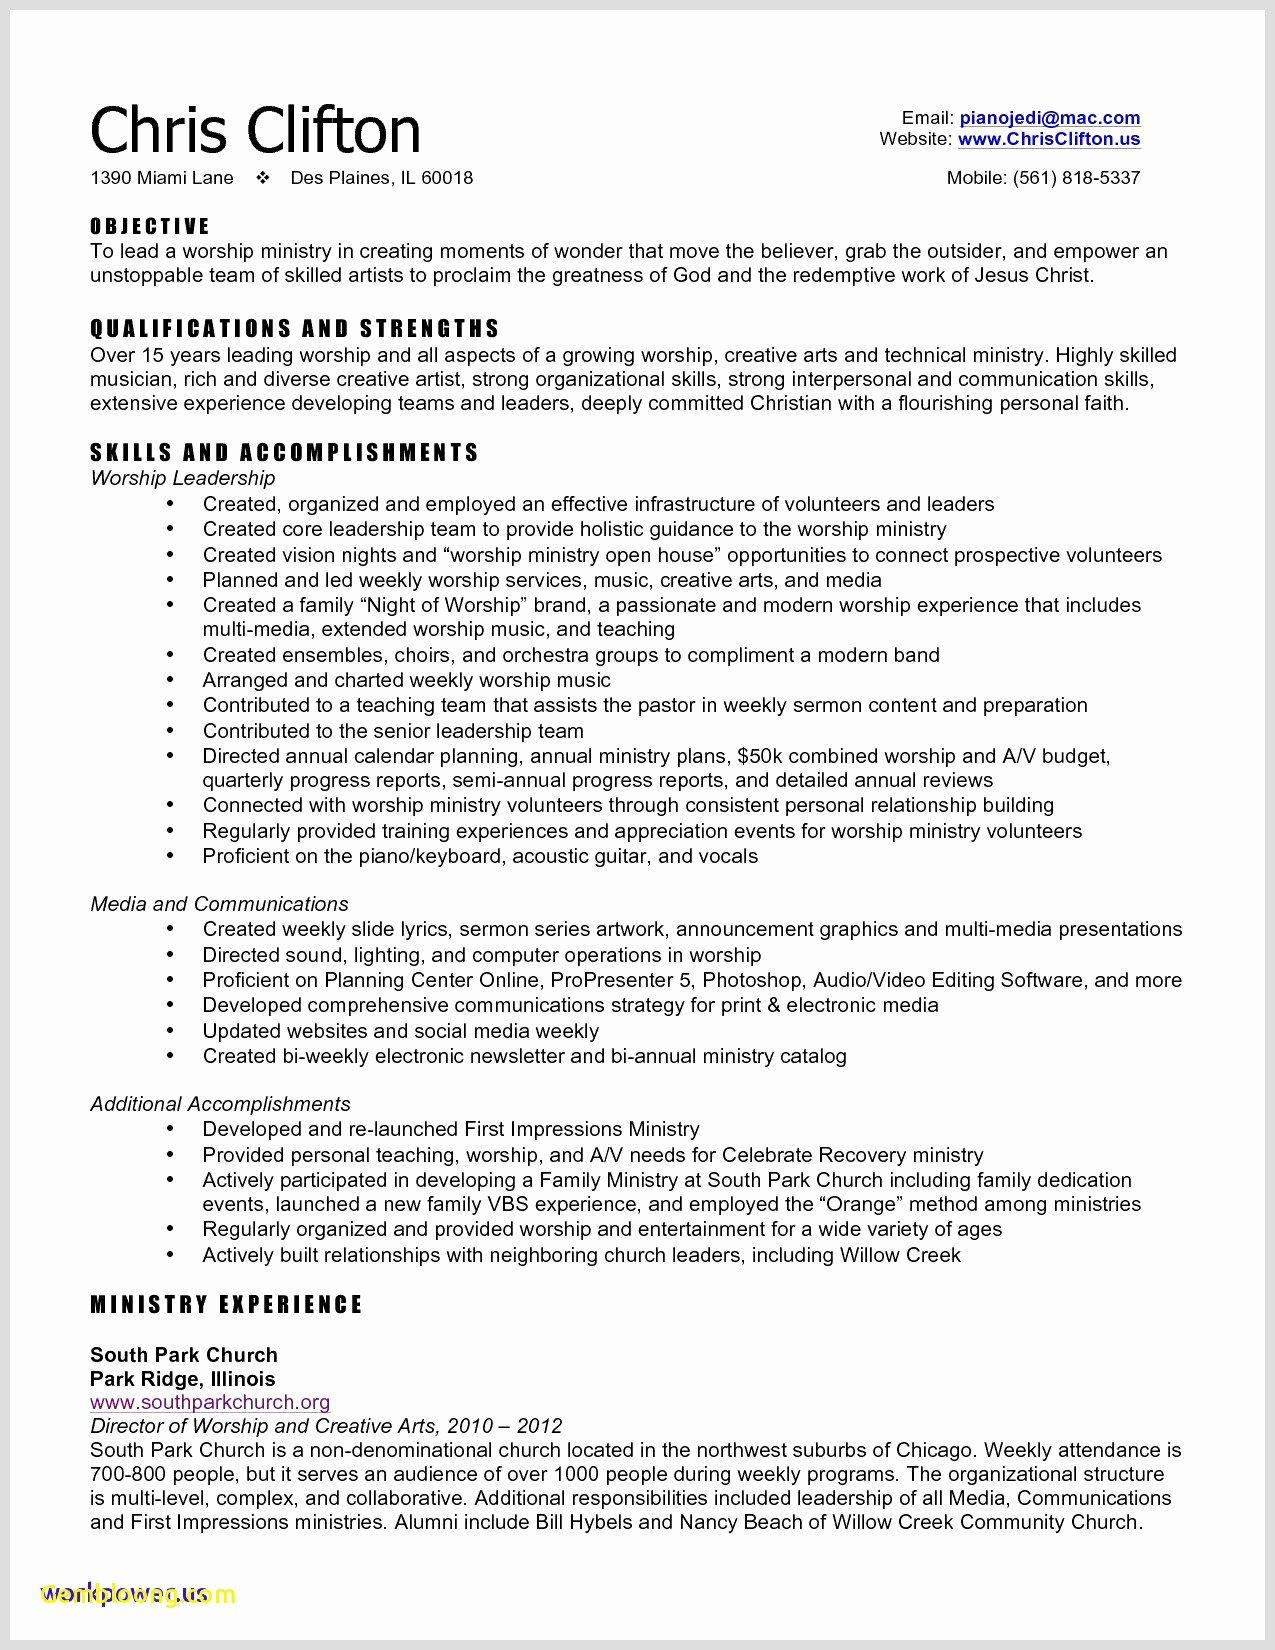 96 Current Nursing Student Resume Resume for Nursing